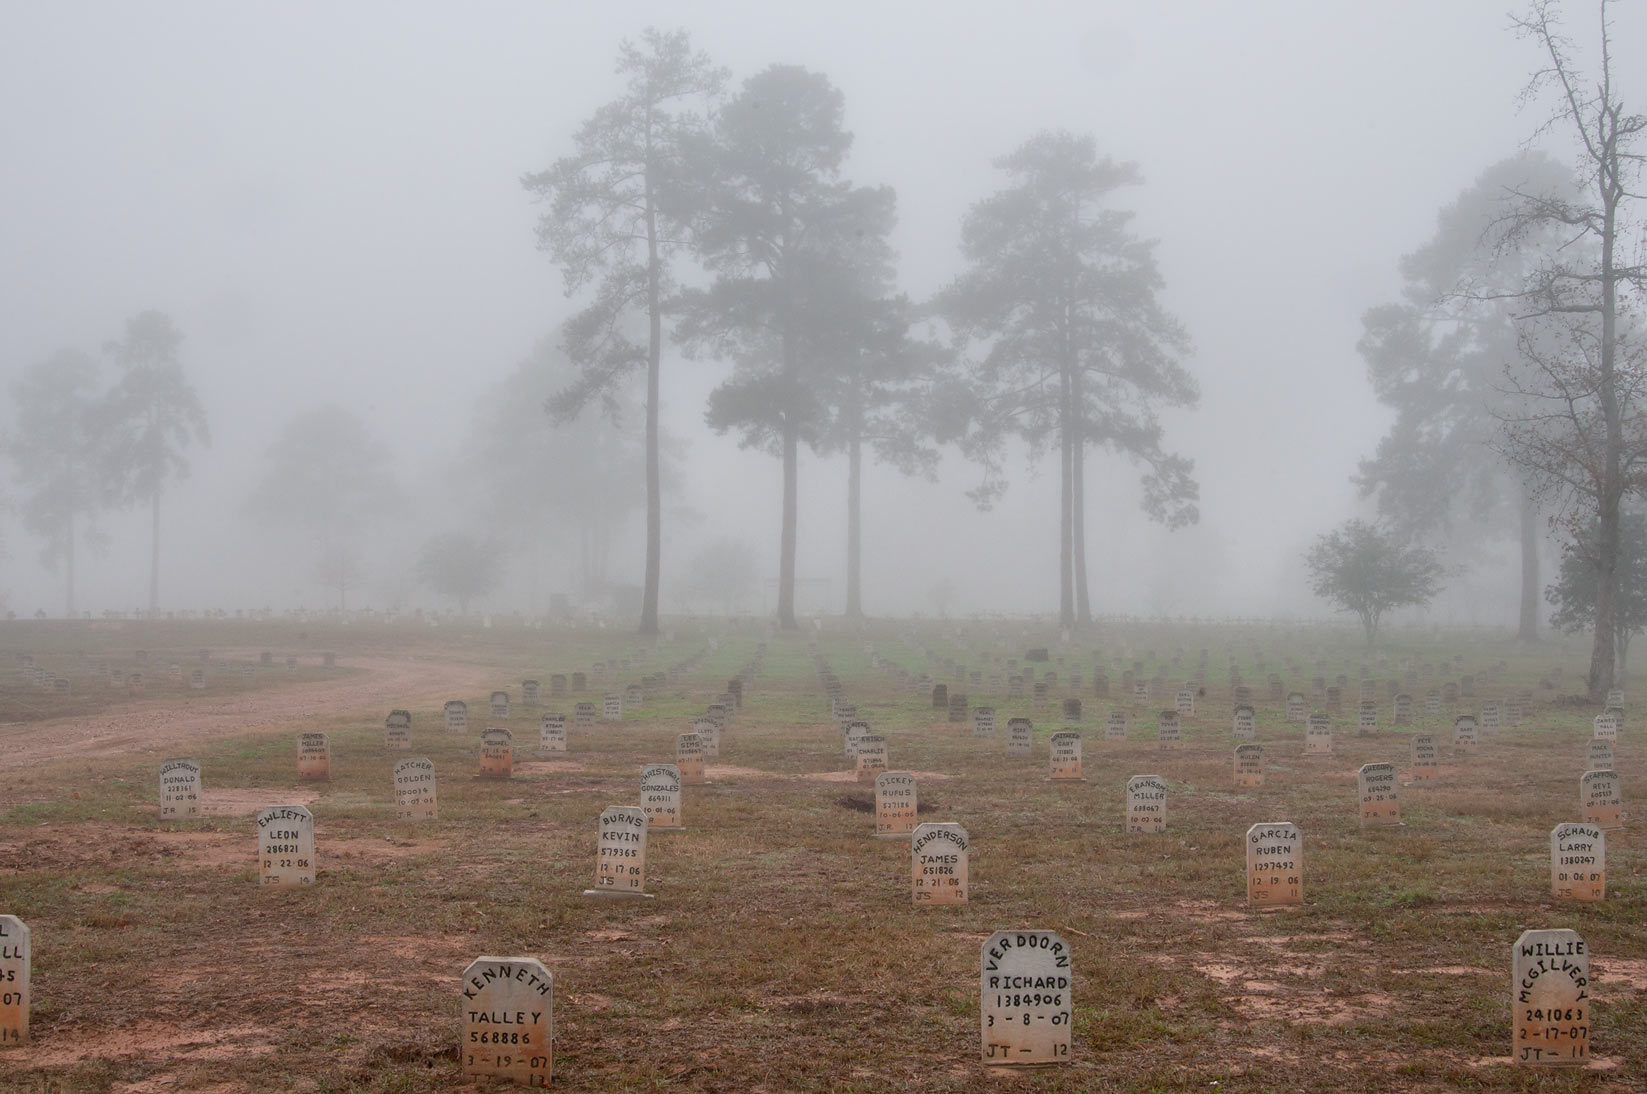 Recent tombs of TDCJ Captain Joe Byrd (Peckerwood Hill) Cemetery in fog. Huntsville, Texas